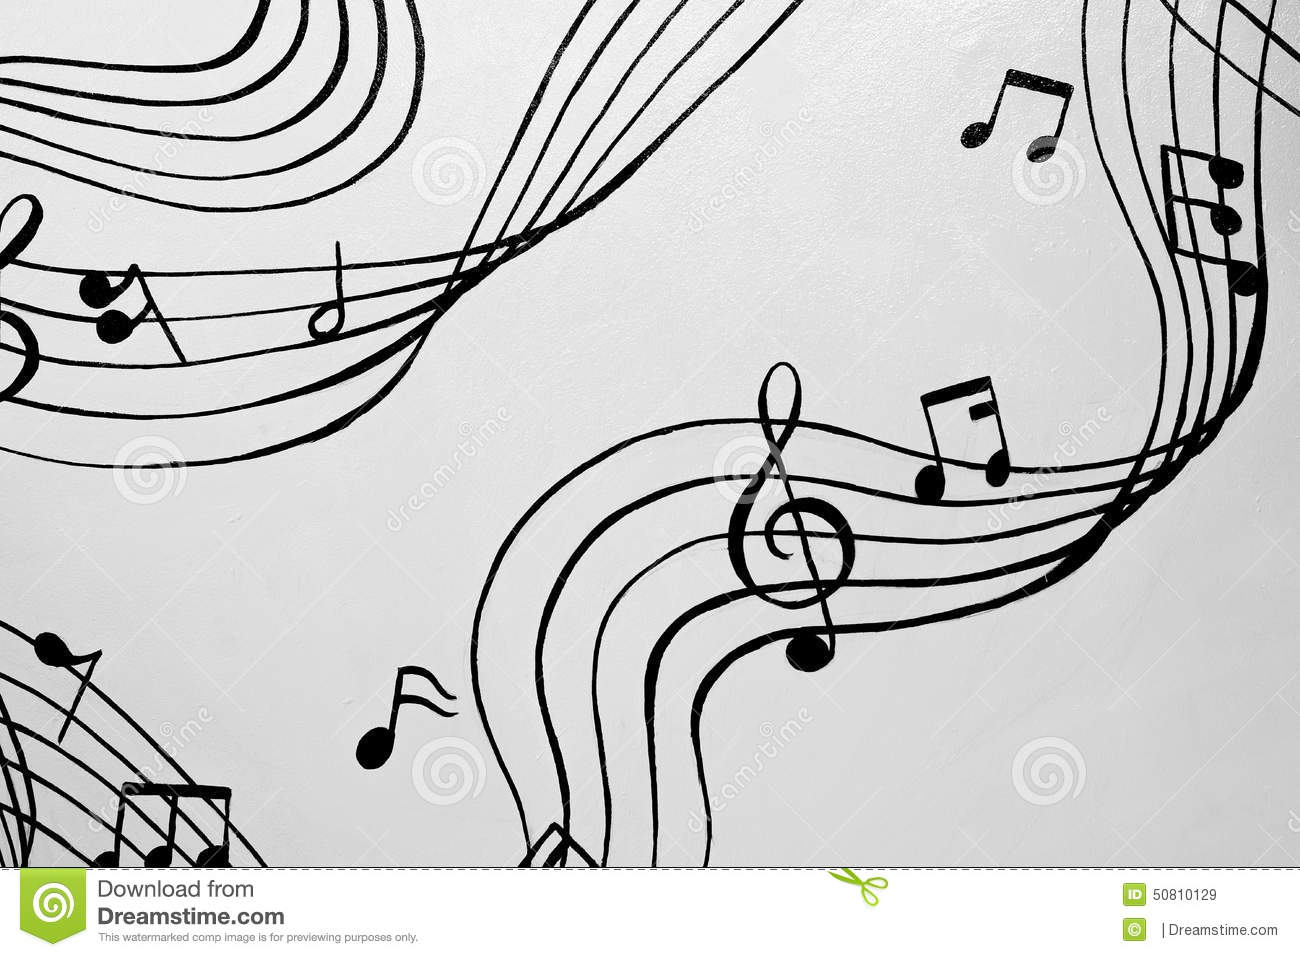 Aflutter of musical chords a illustration stock illustration aflutter of musical chords a illustration hexwebz Image collections